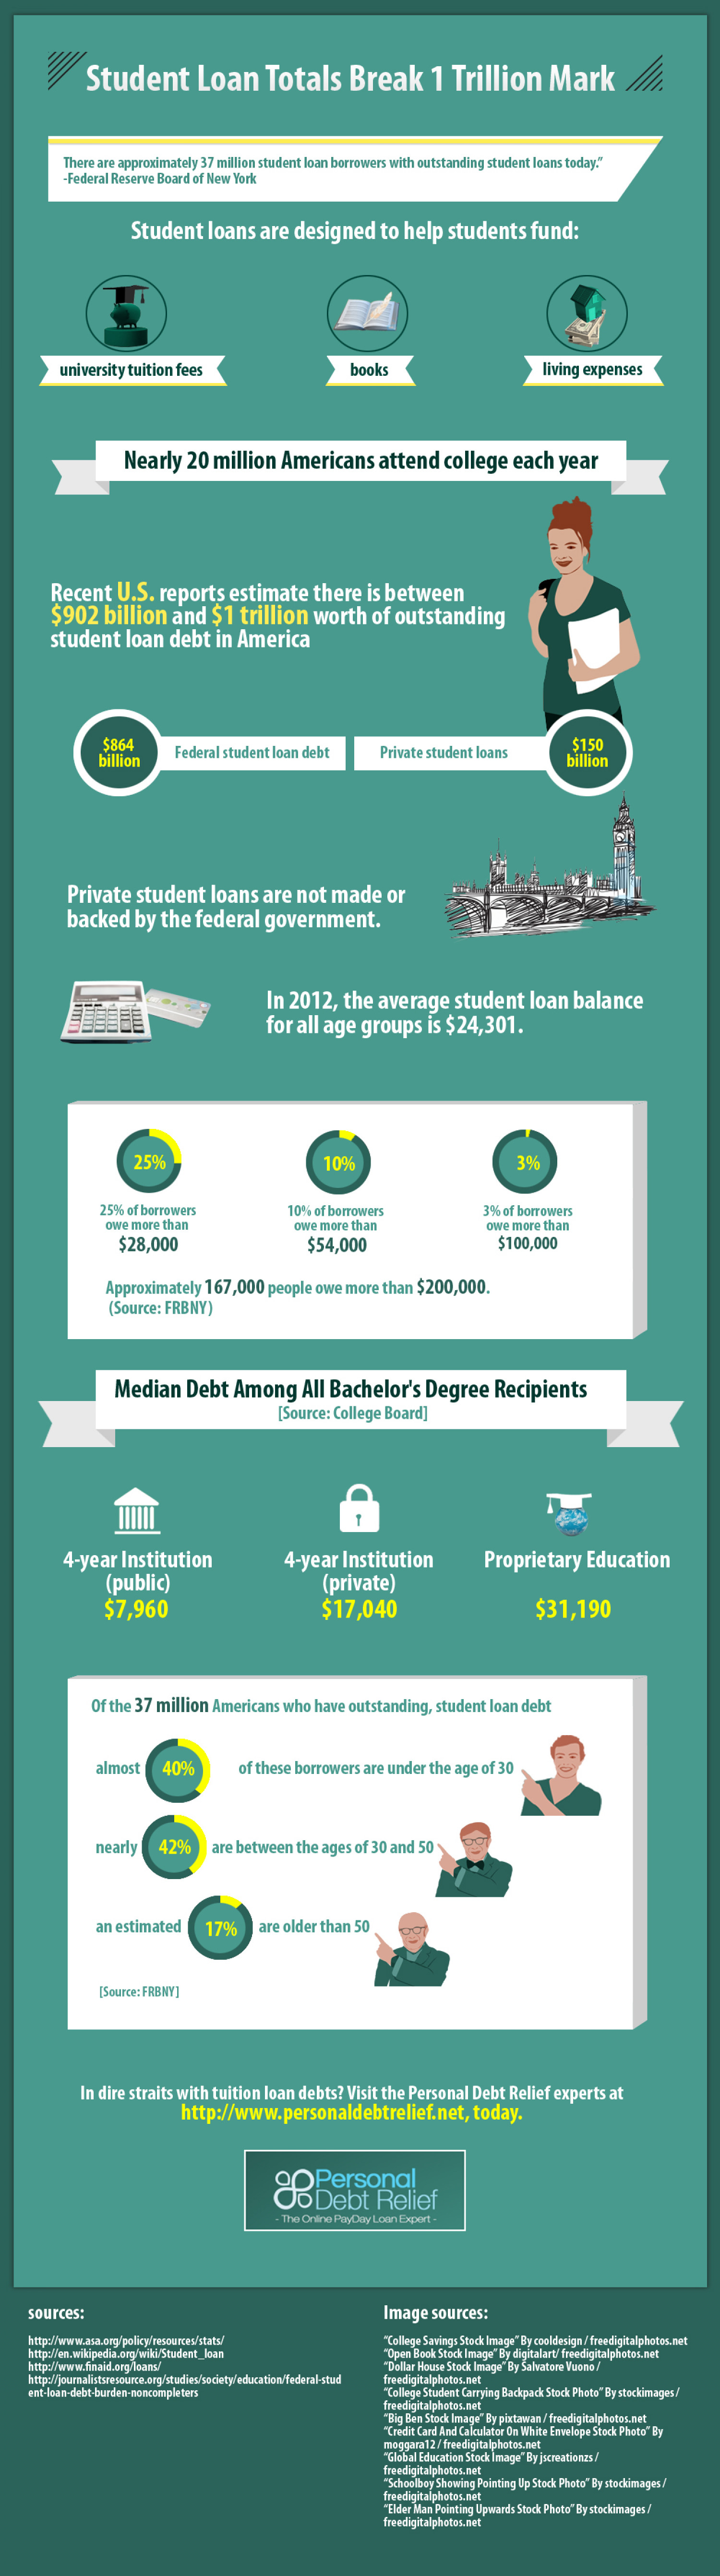 Student Loan Totals Break 1 Trillion Mark Infographic